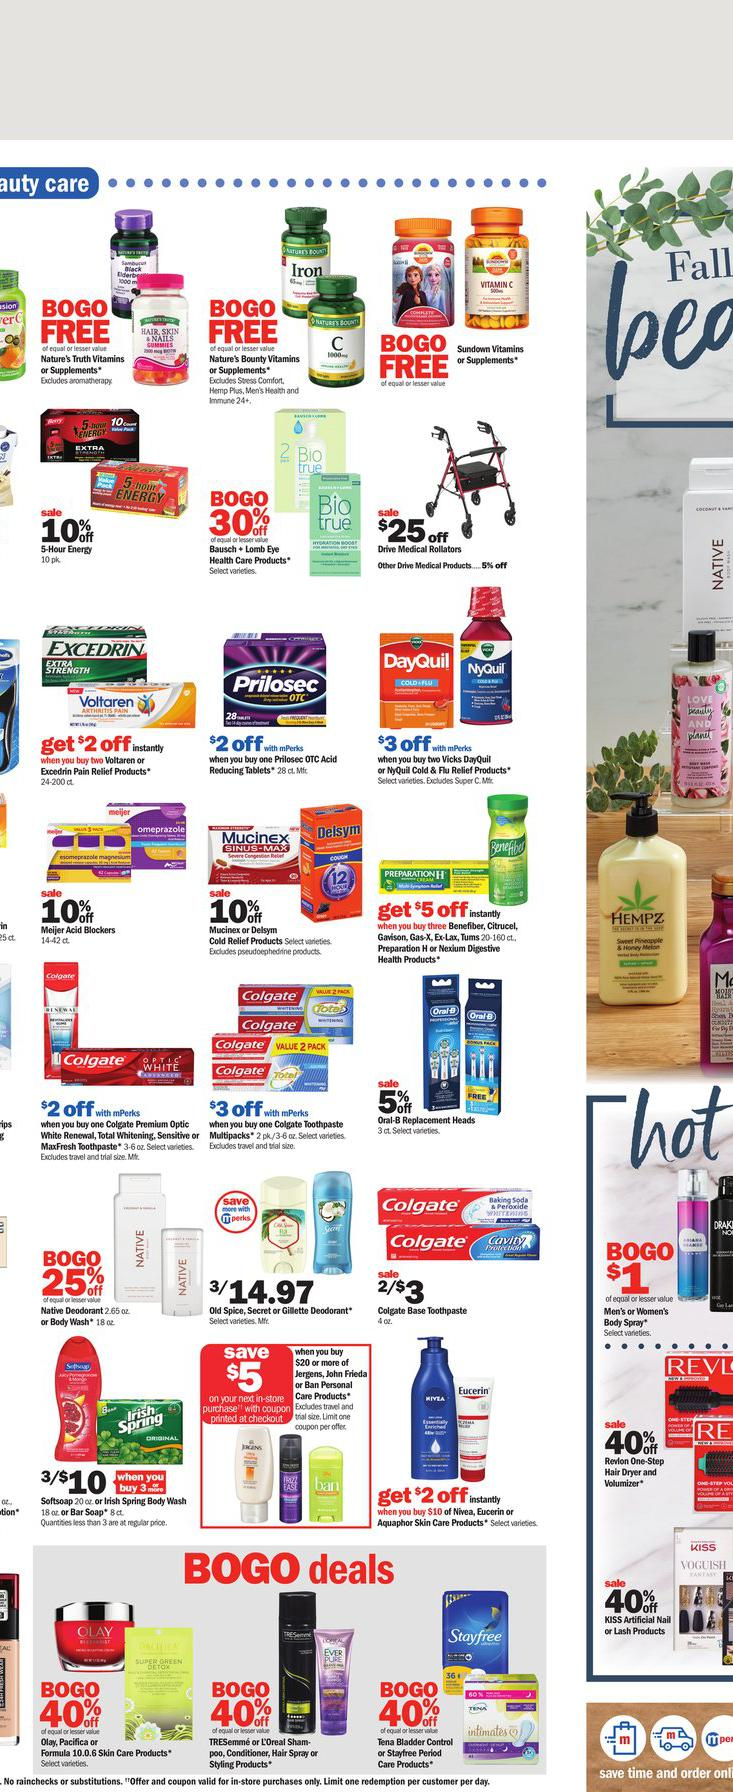 10.10.2021 Meijer ad 15. page